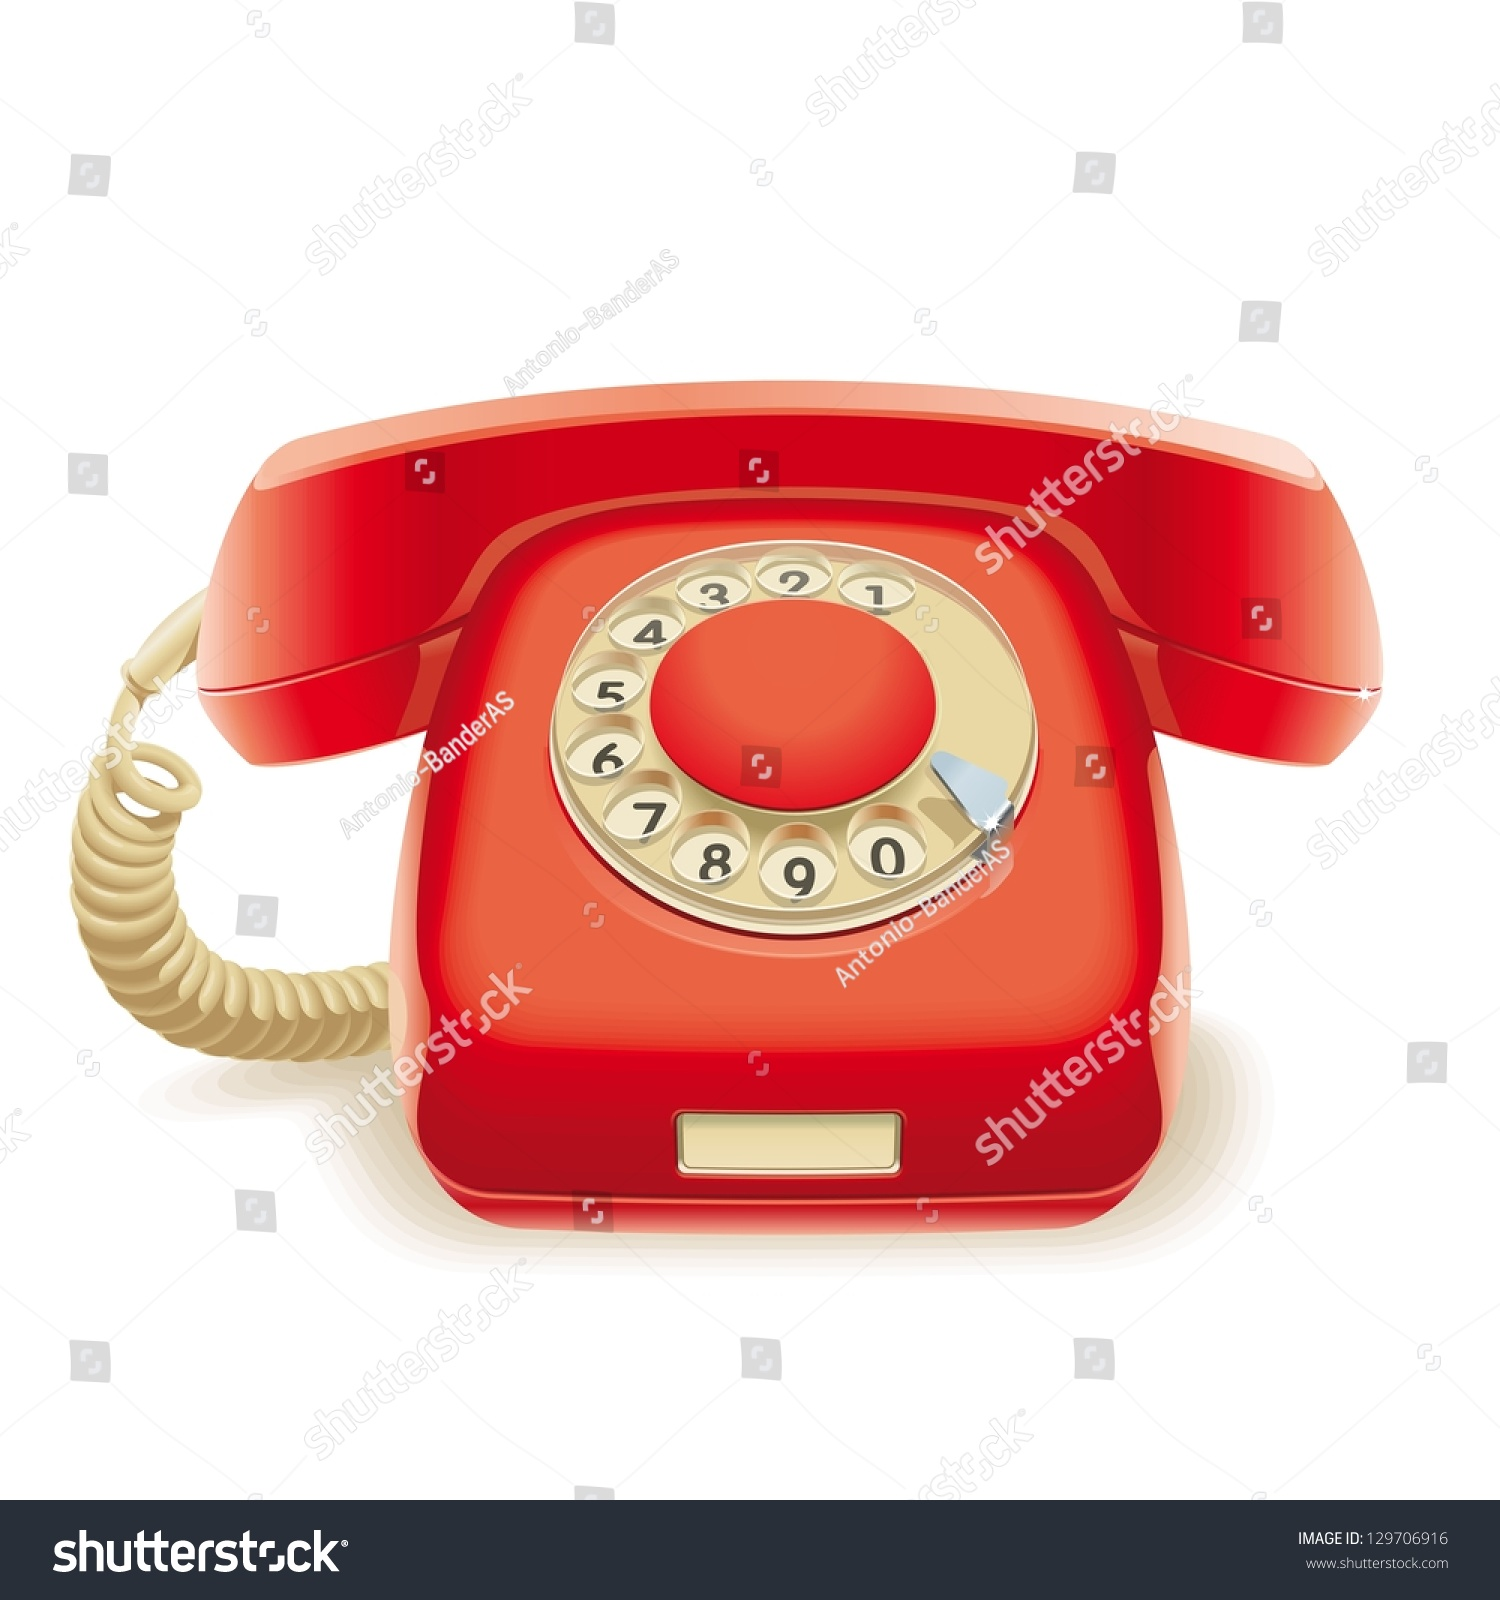 Old Red Phone Realistic Illustration Stock Vector Royalty Free Telephone Handset Wiring Of Disk Retro To The Wire